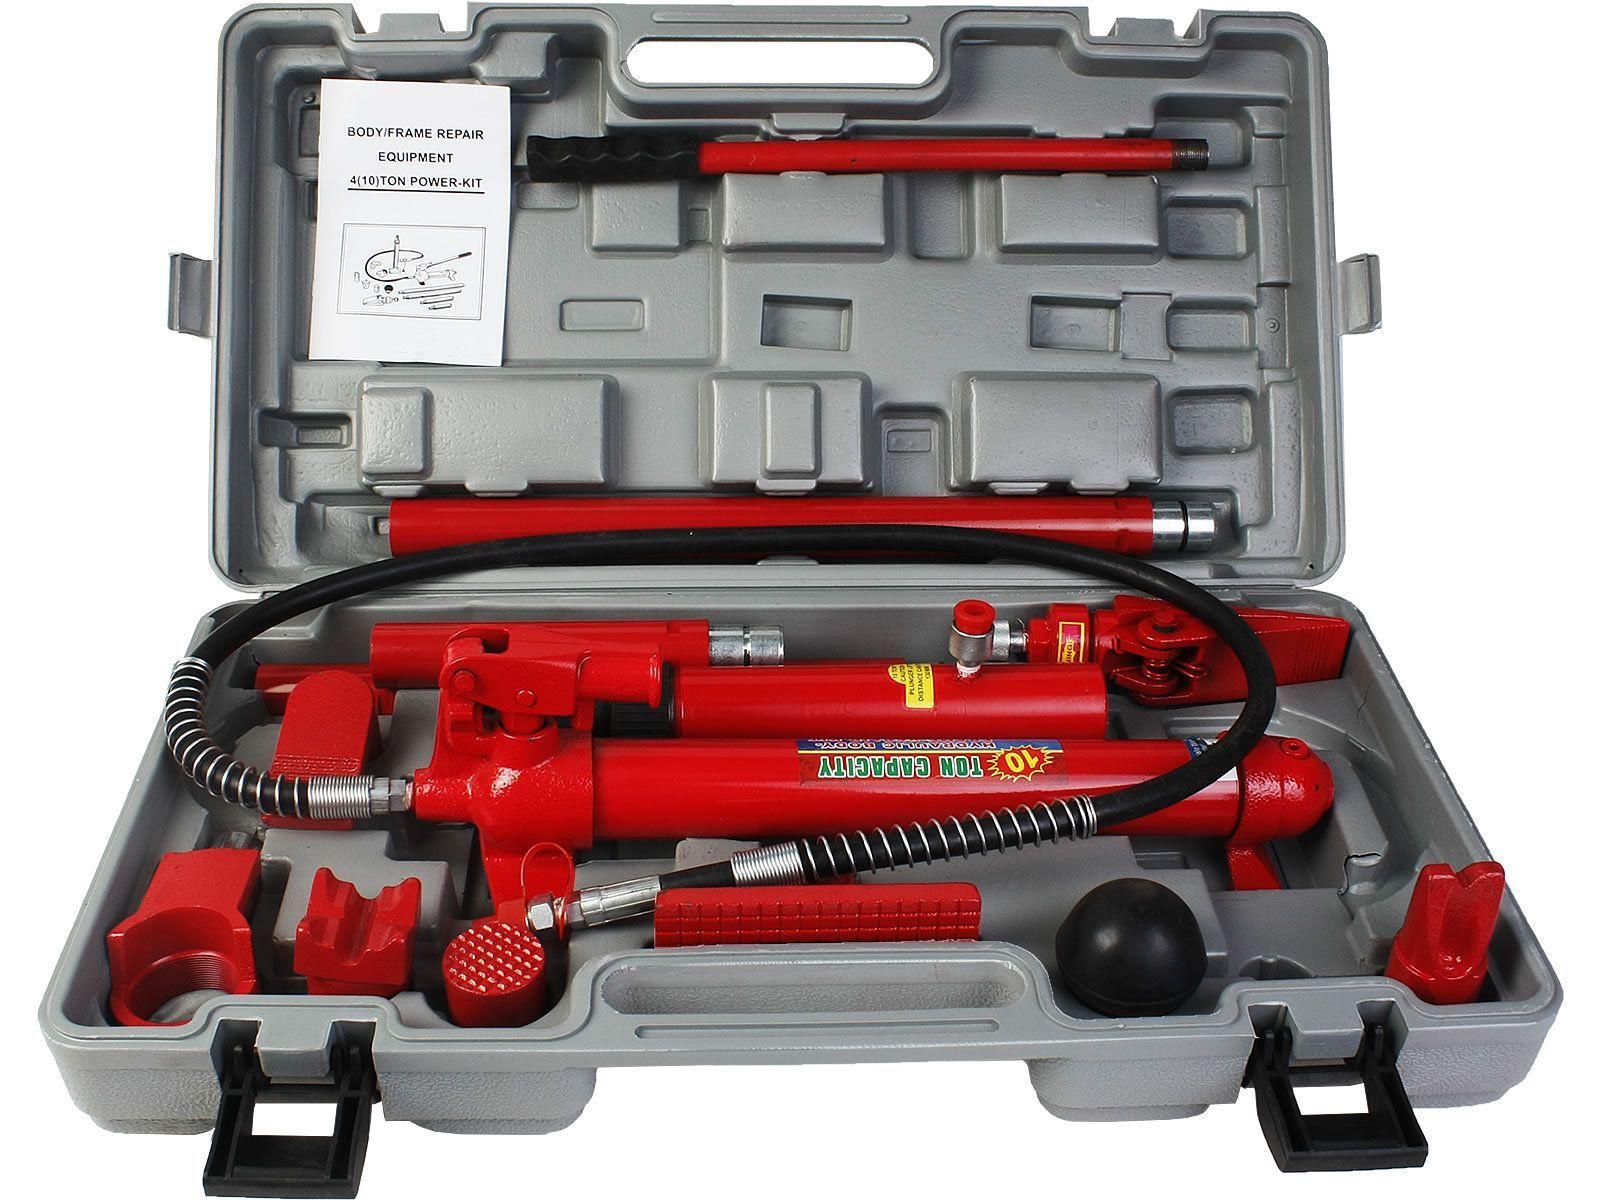 10 Ton Porta Power Hydraulic Jack Body Frame Repair Kit Auto Shop Tool Heavy Set Car Shop Repair Auto Body Repair